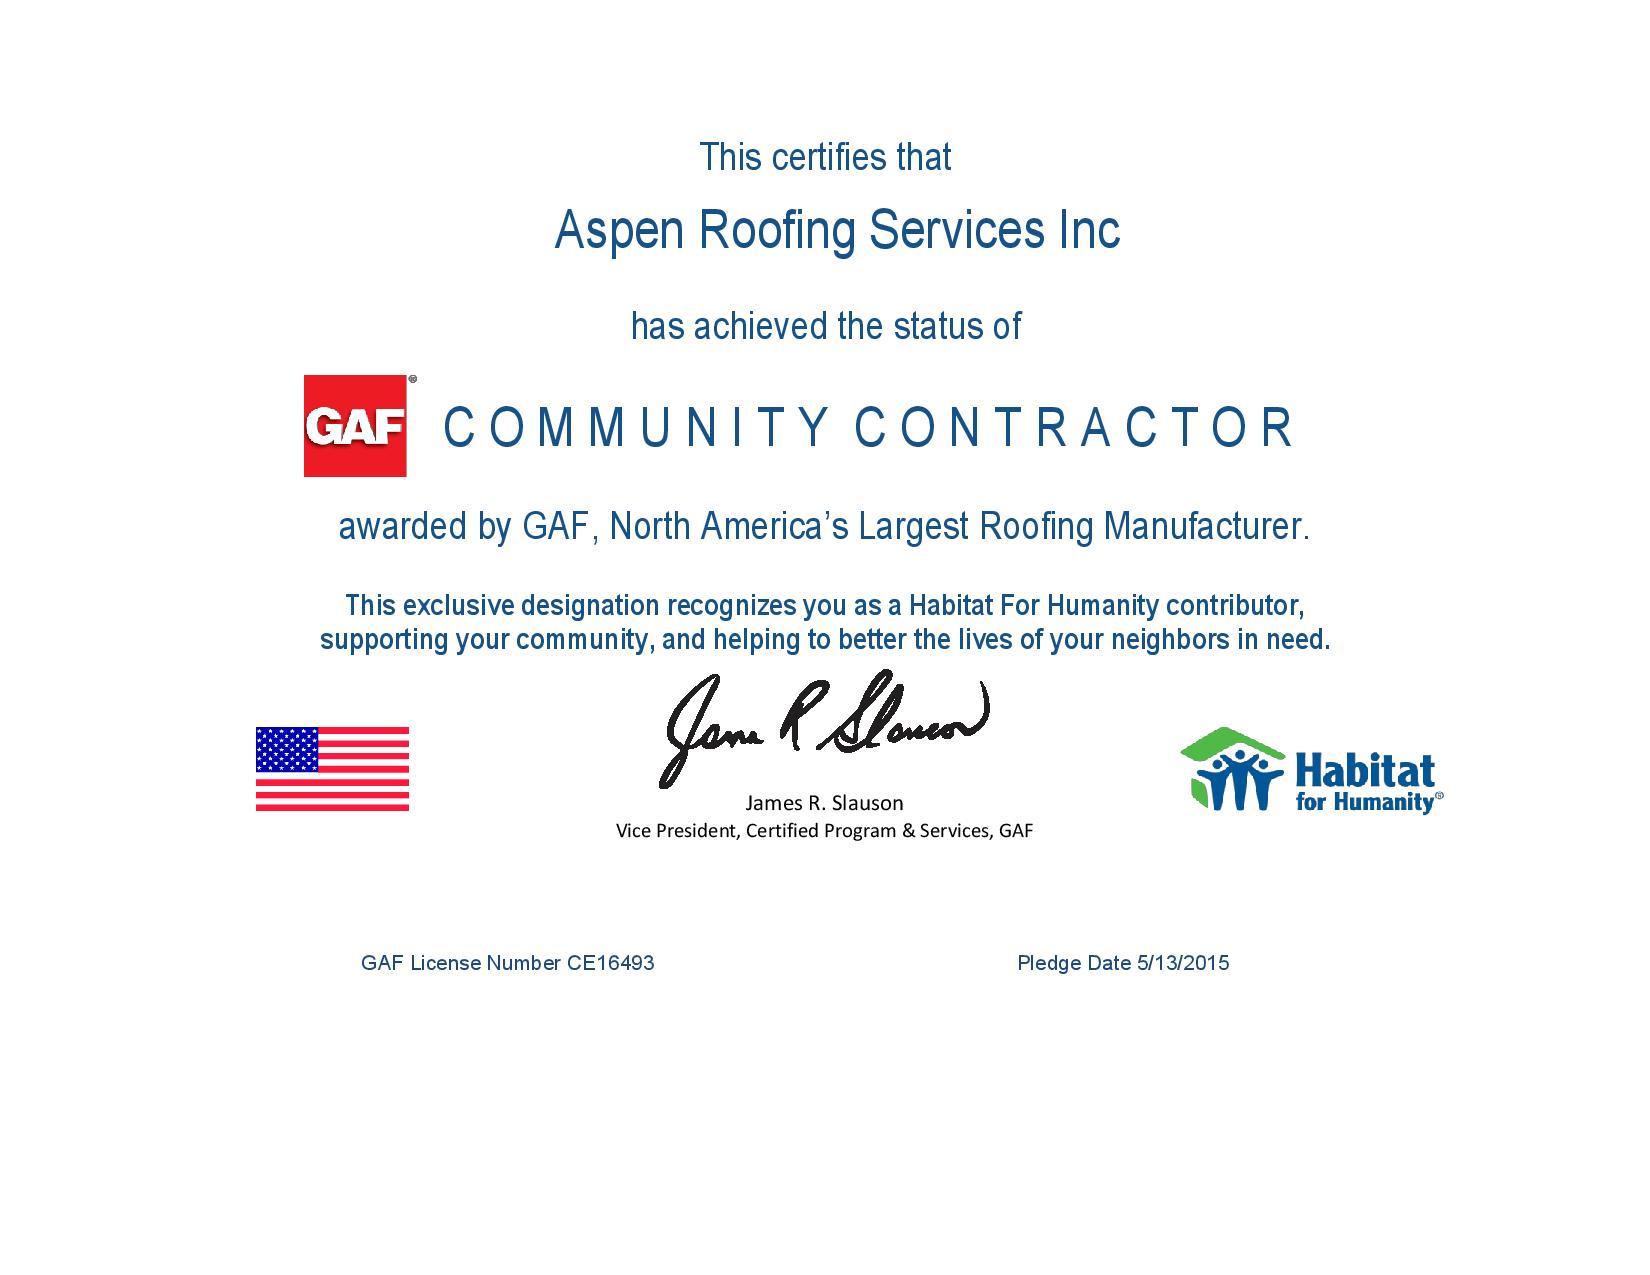 Aspen Roofing Services Inc